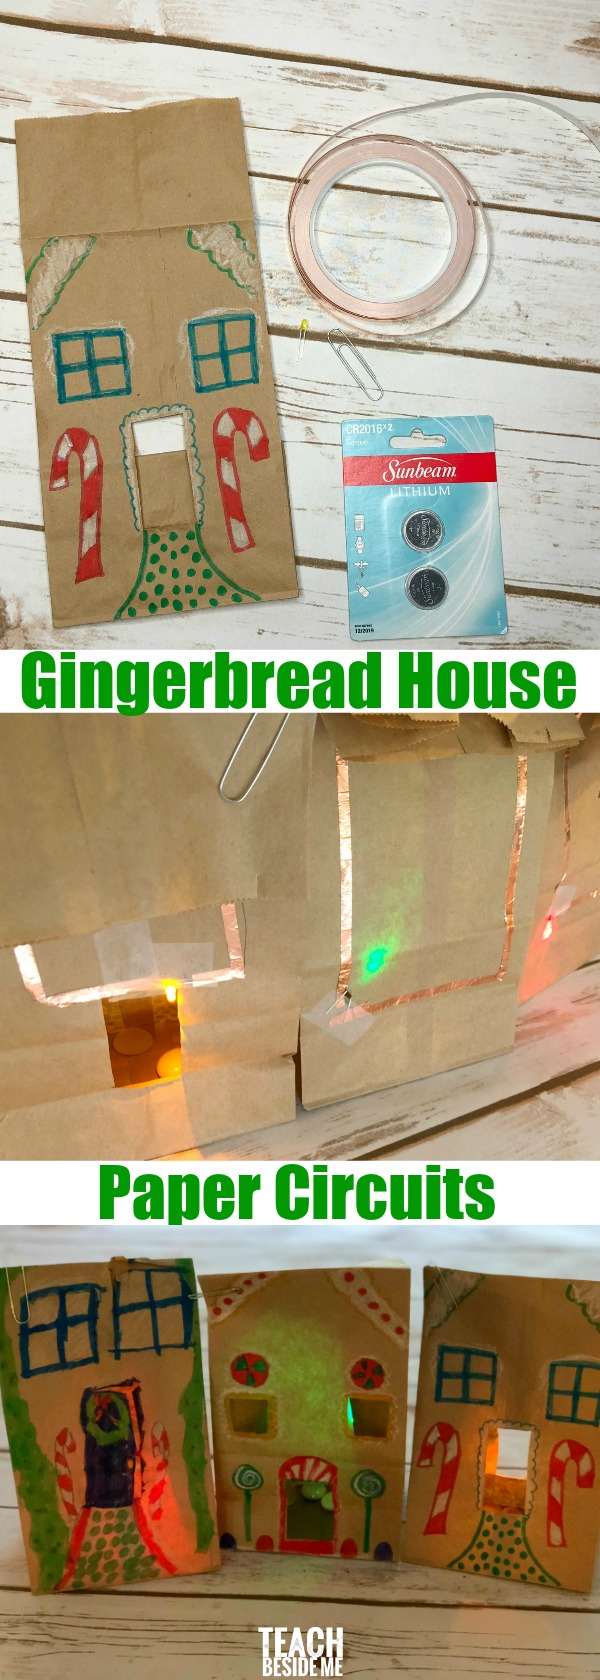 Gingerbread House Paper Circuits